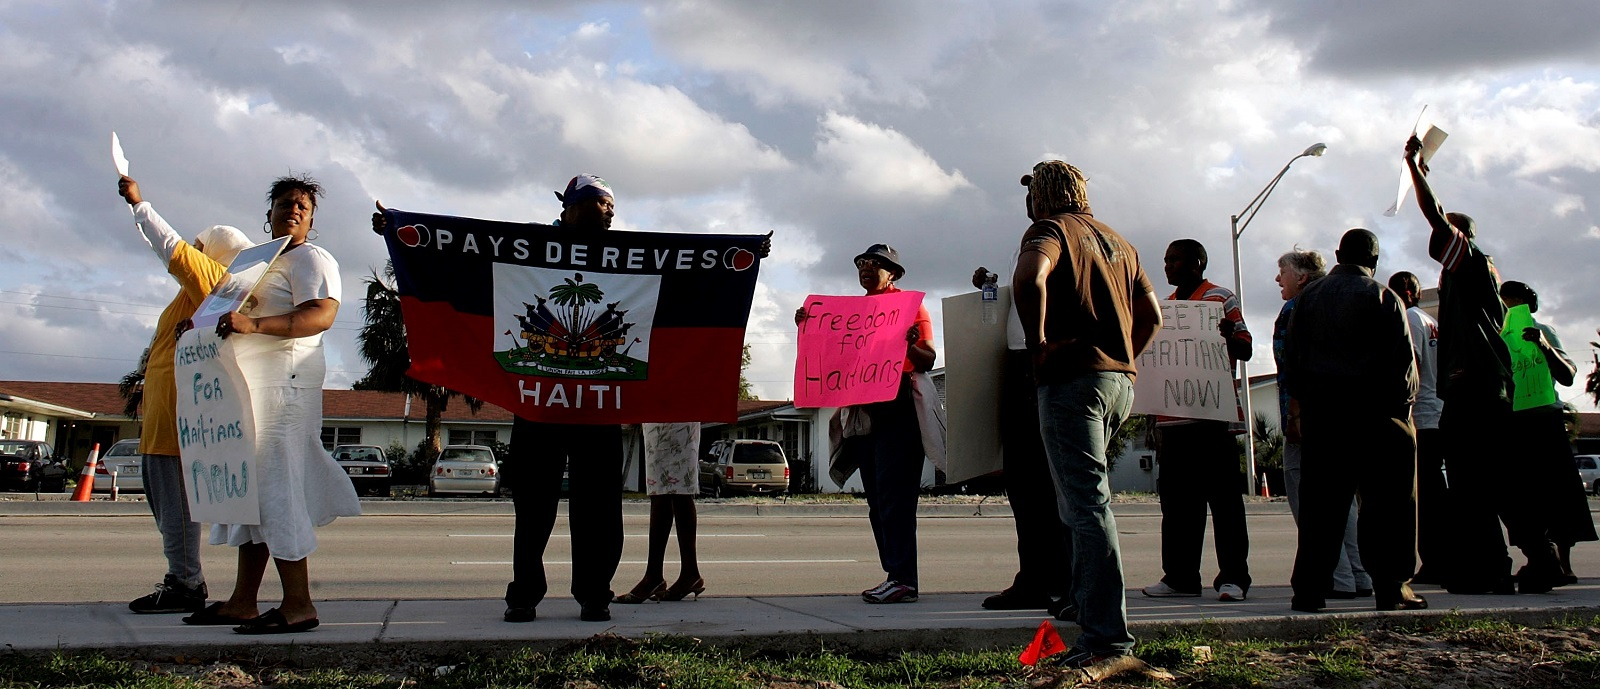 Activists protest US immigration policy for Haitians (Photo: Joe Raedle/Getty Images)